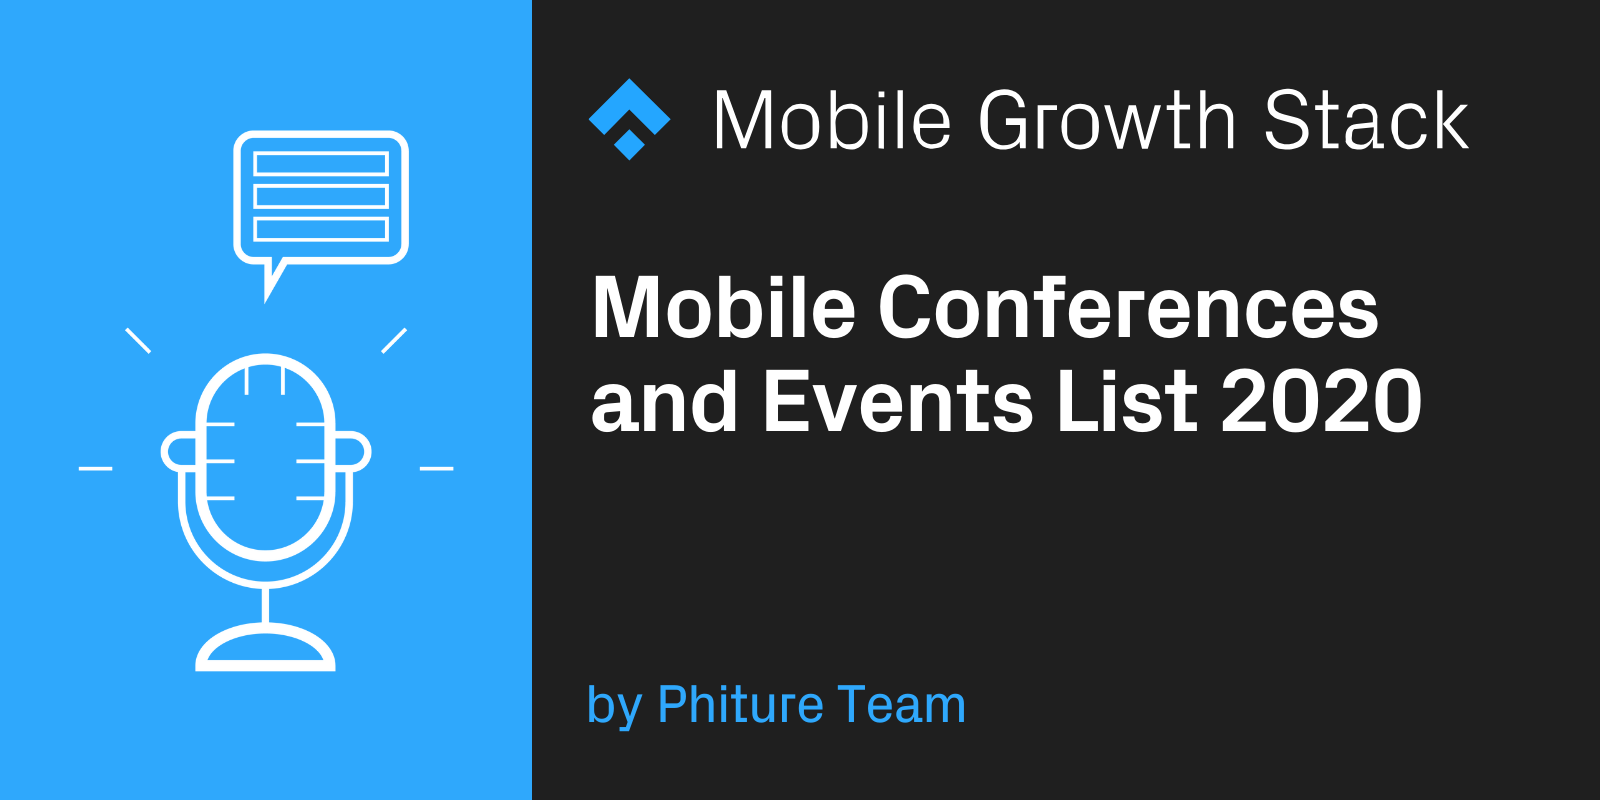 Mobile Conferences and Events List 2020